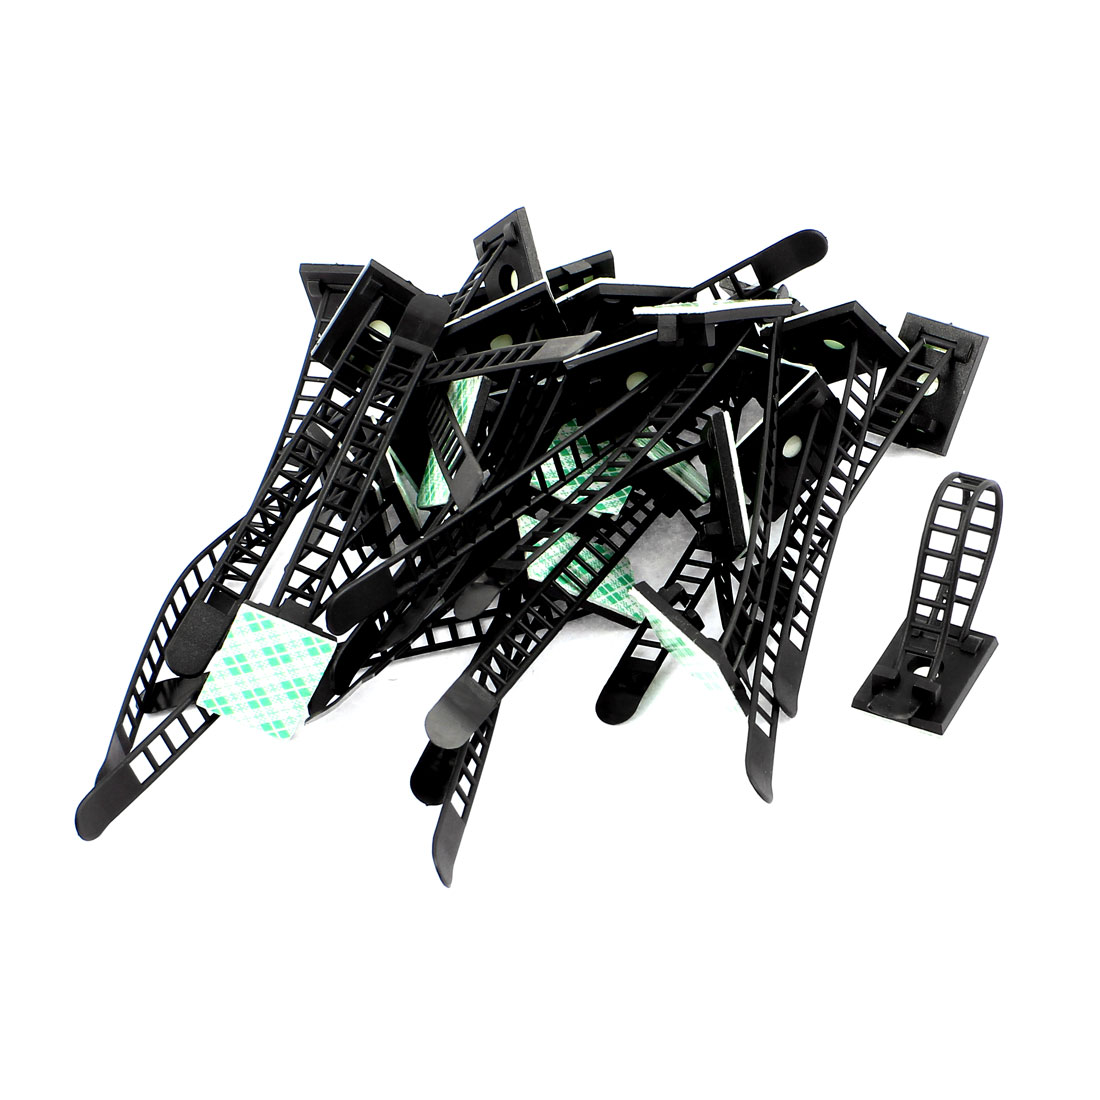 31 Pcs ATC-17 Plastic Adjustable Self-Adhesive Cable Tie Mount Base Holder